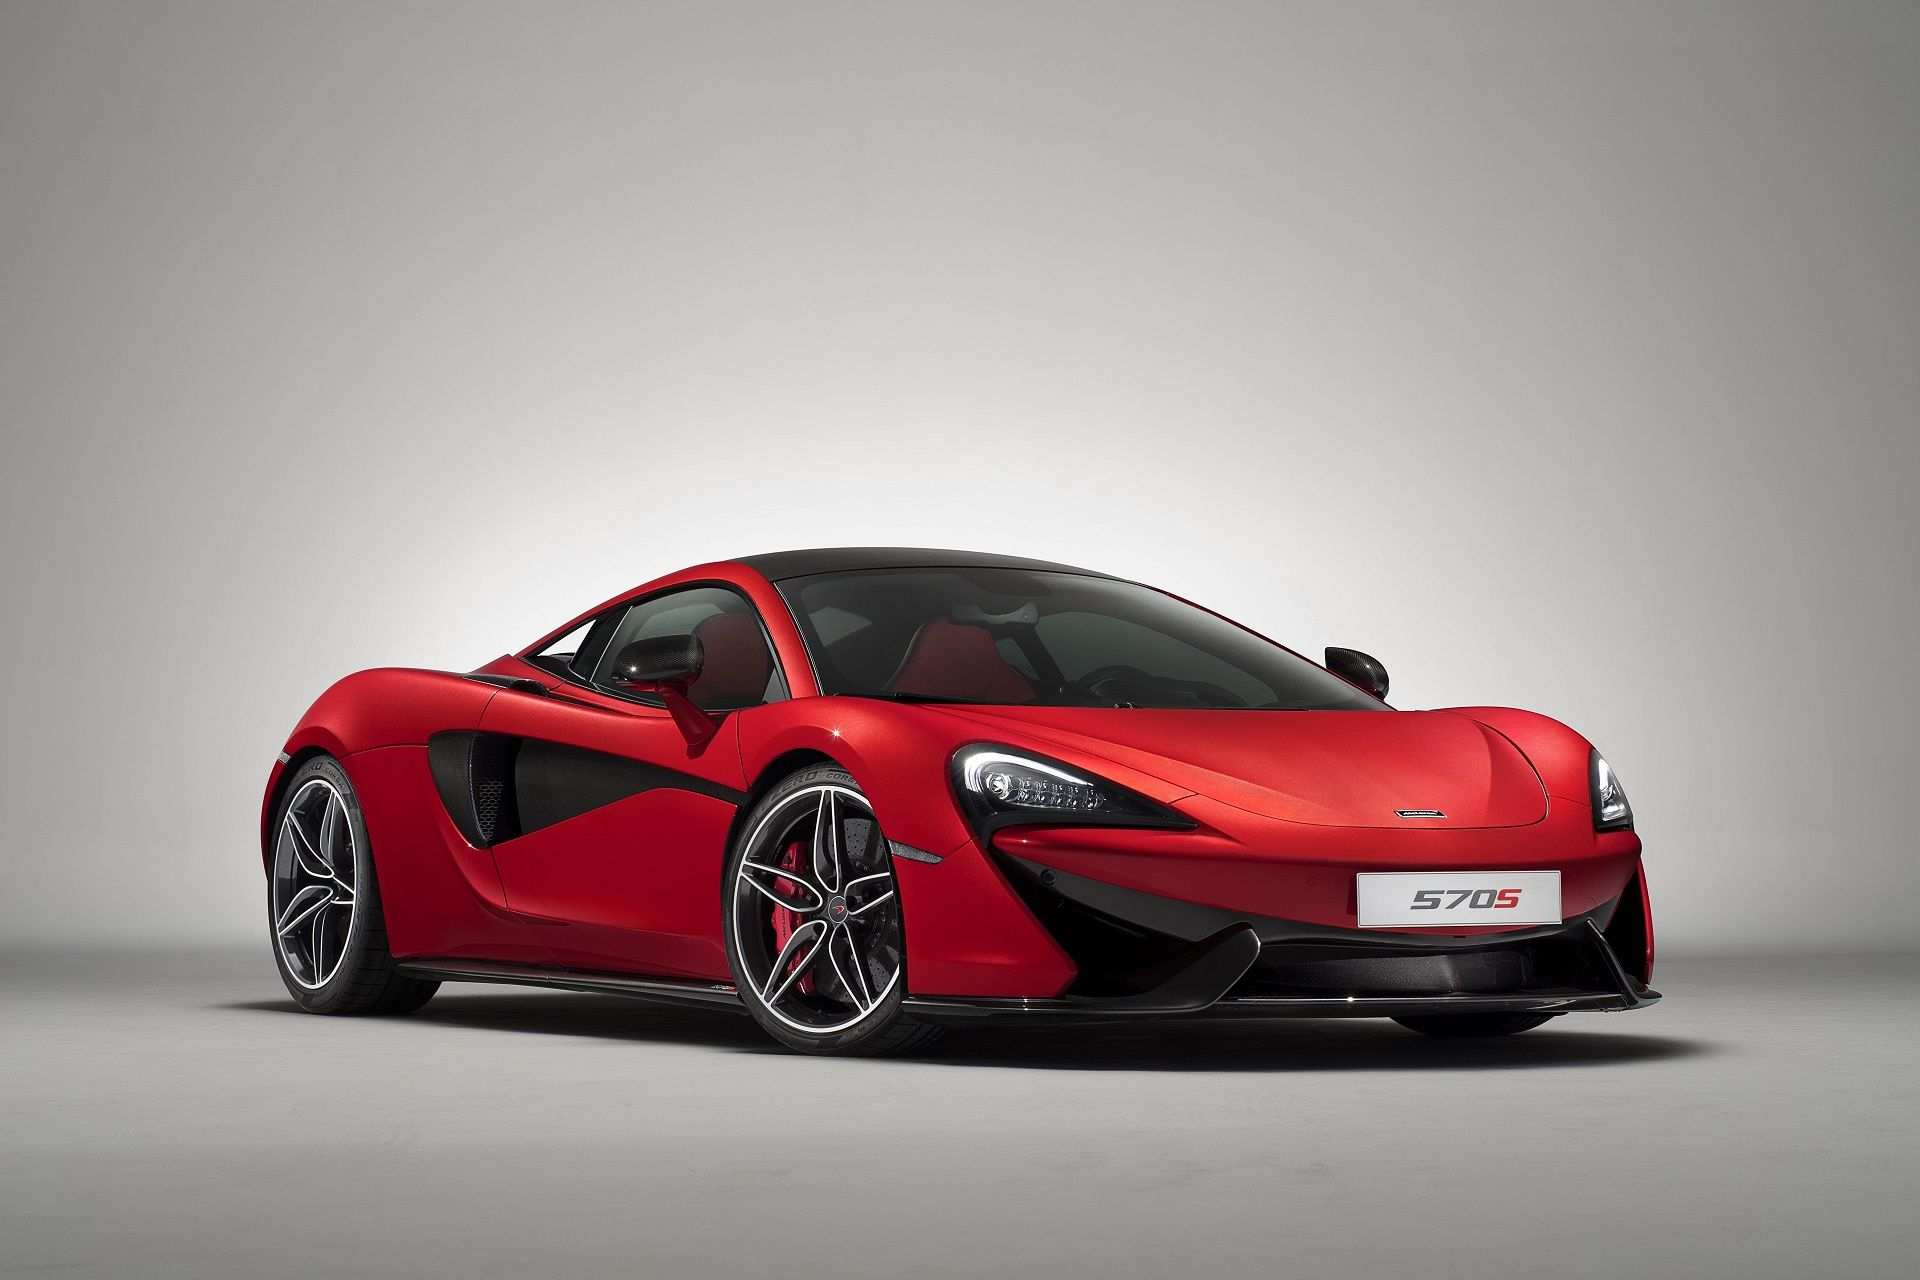 76 The 2020 Mclaren 570S New Review for 2020 Mclaren 570S